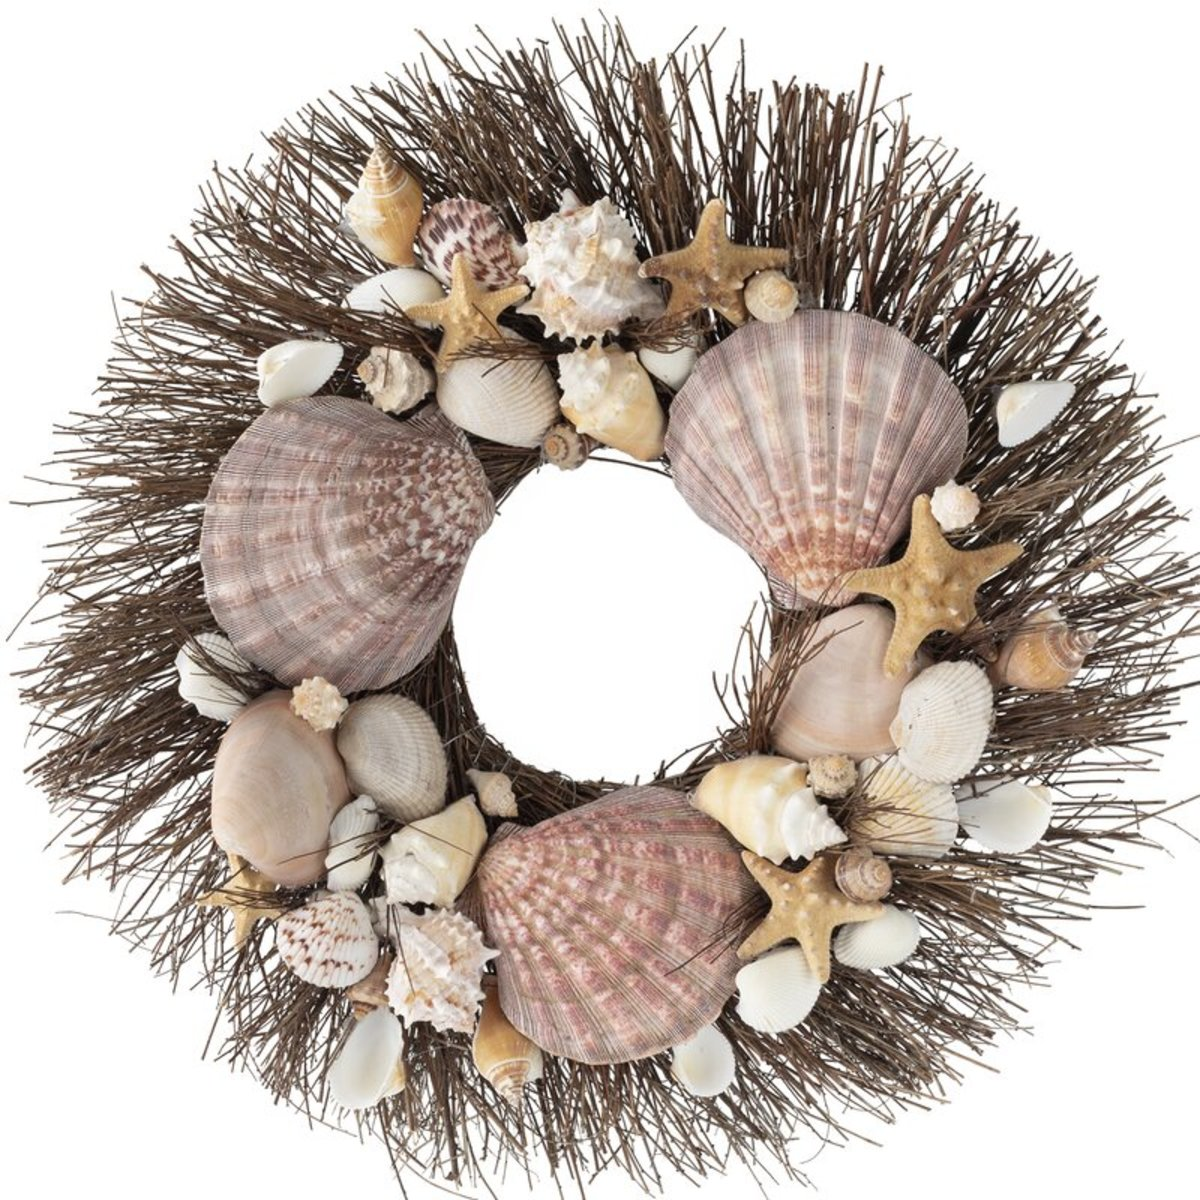 There are many forms you can use as a base for your seashell wreath. The grass form is a popular choice